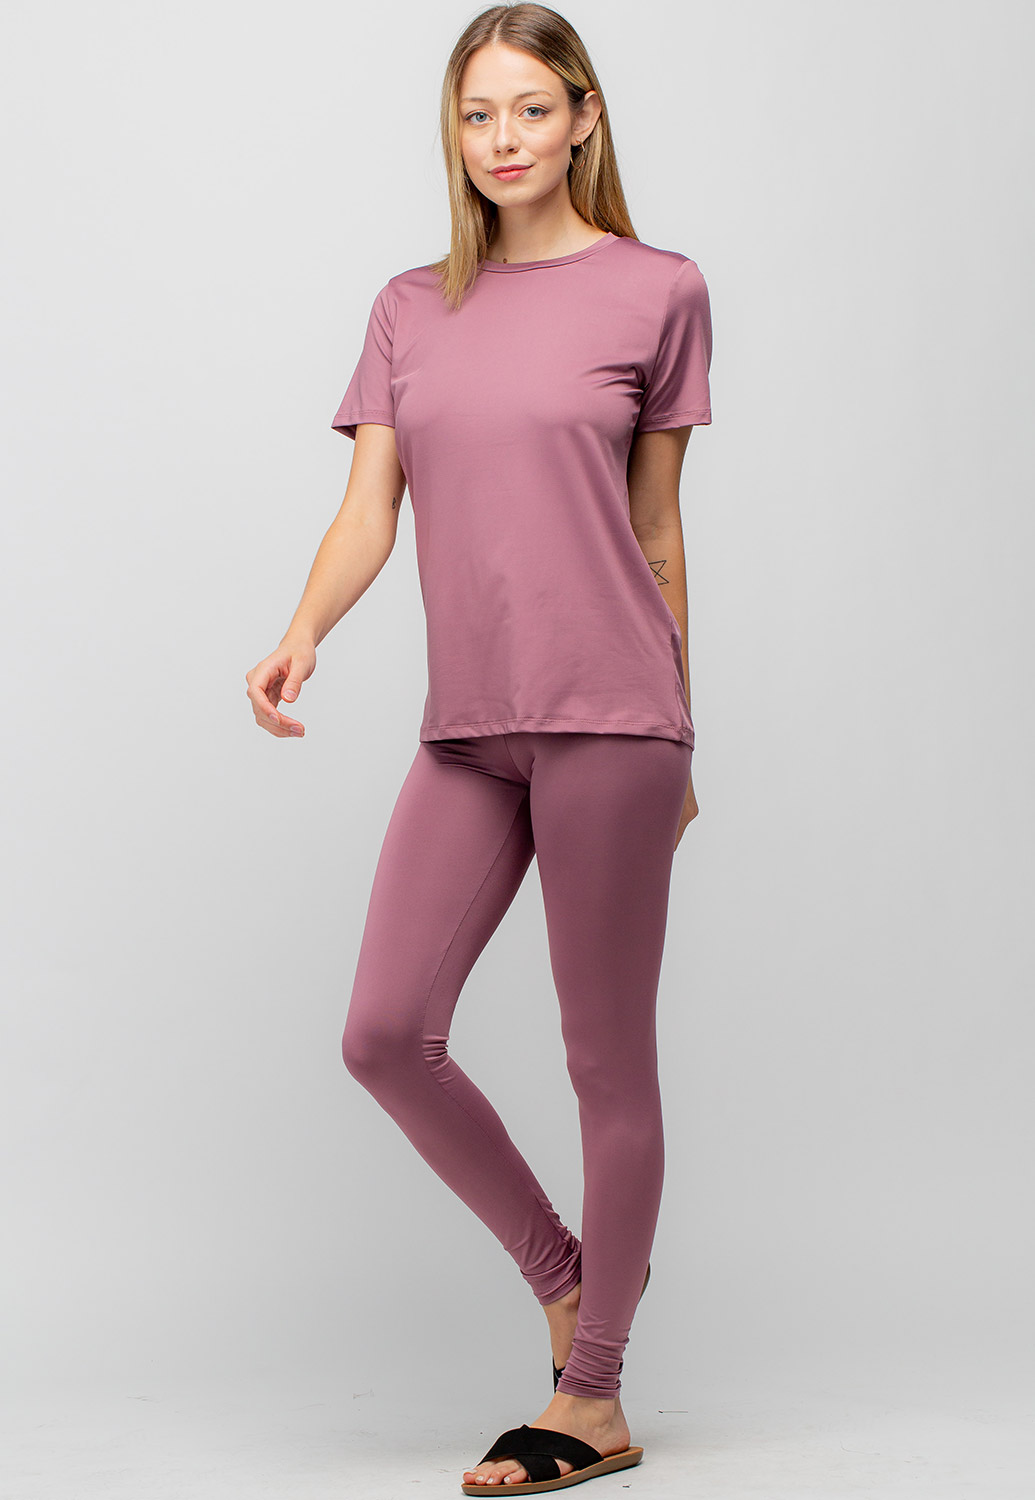 Basic Top & Long Leggings Activewear Set